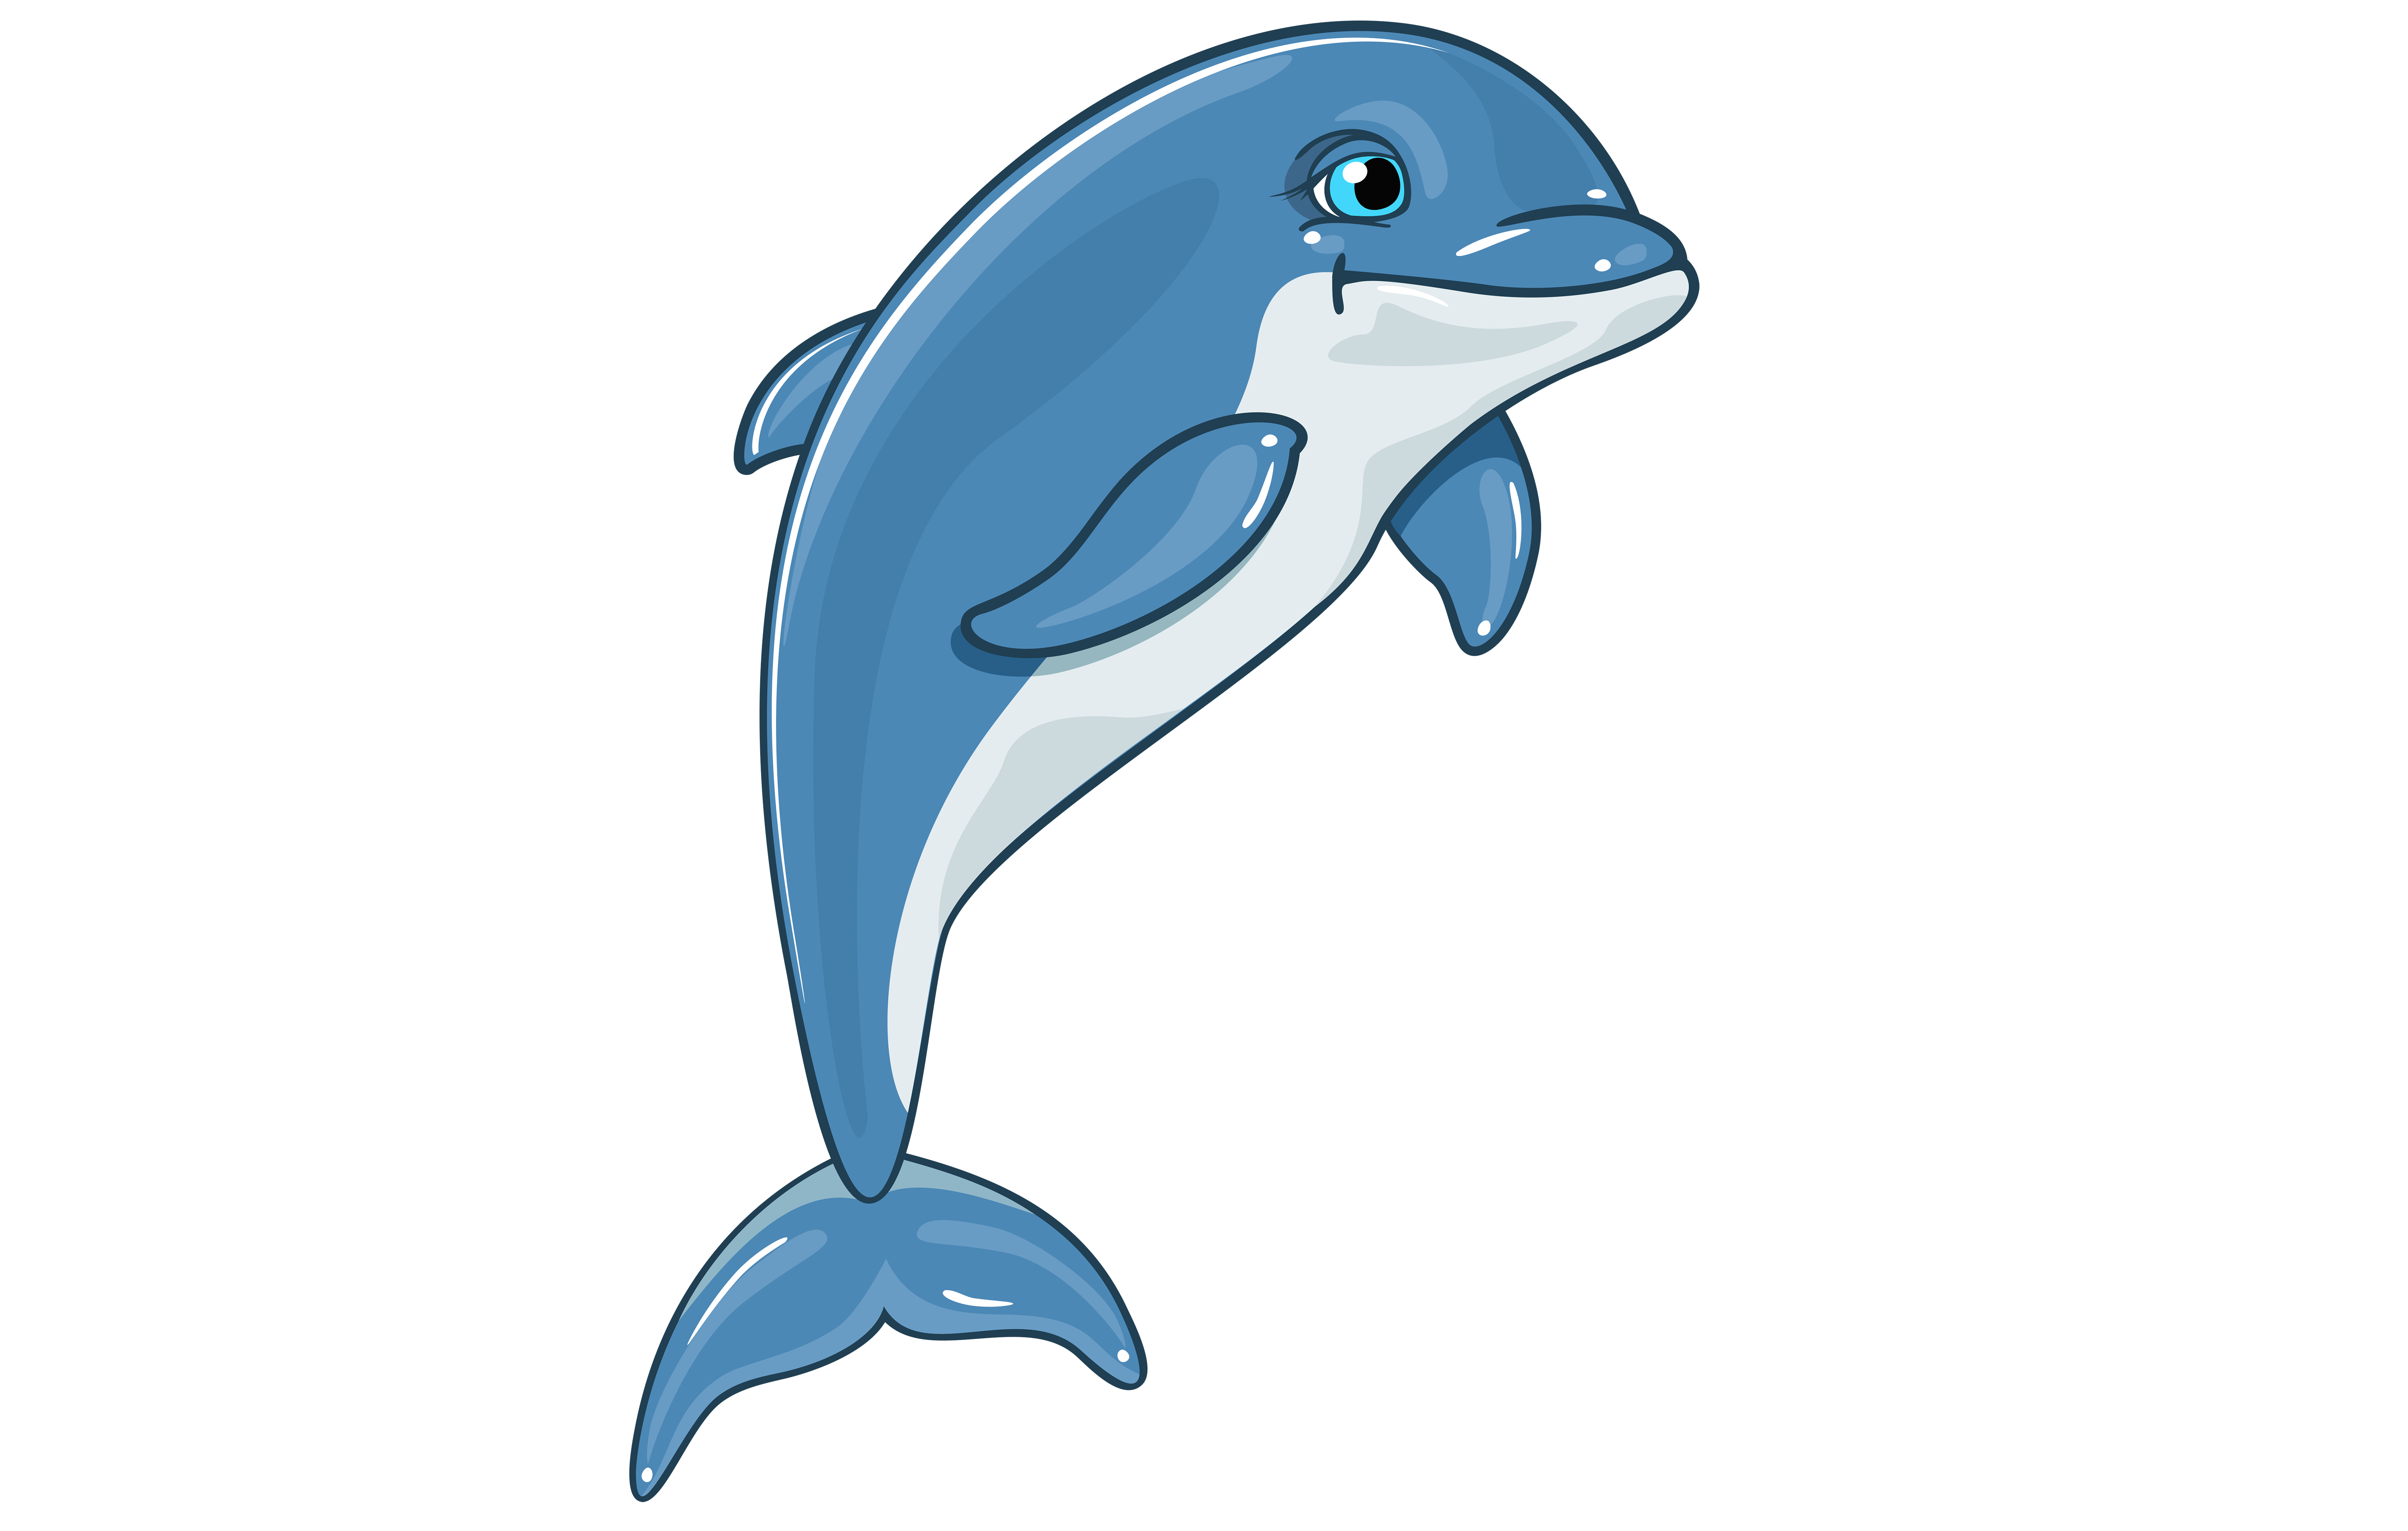 Dolphin clipart copyright free. Clip art d dolphins